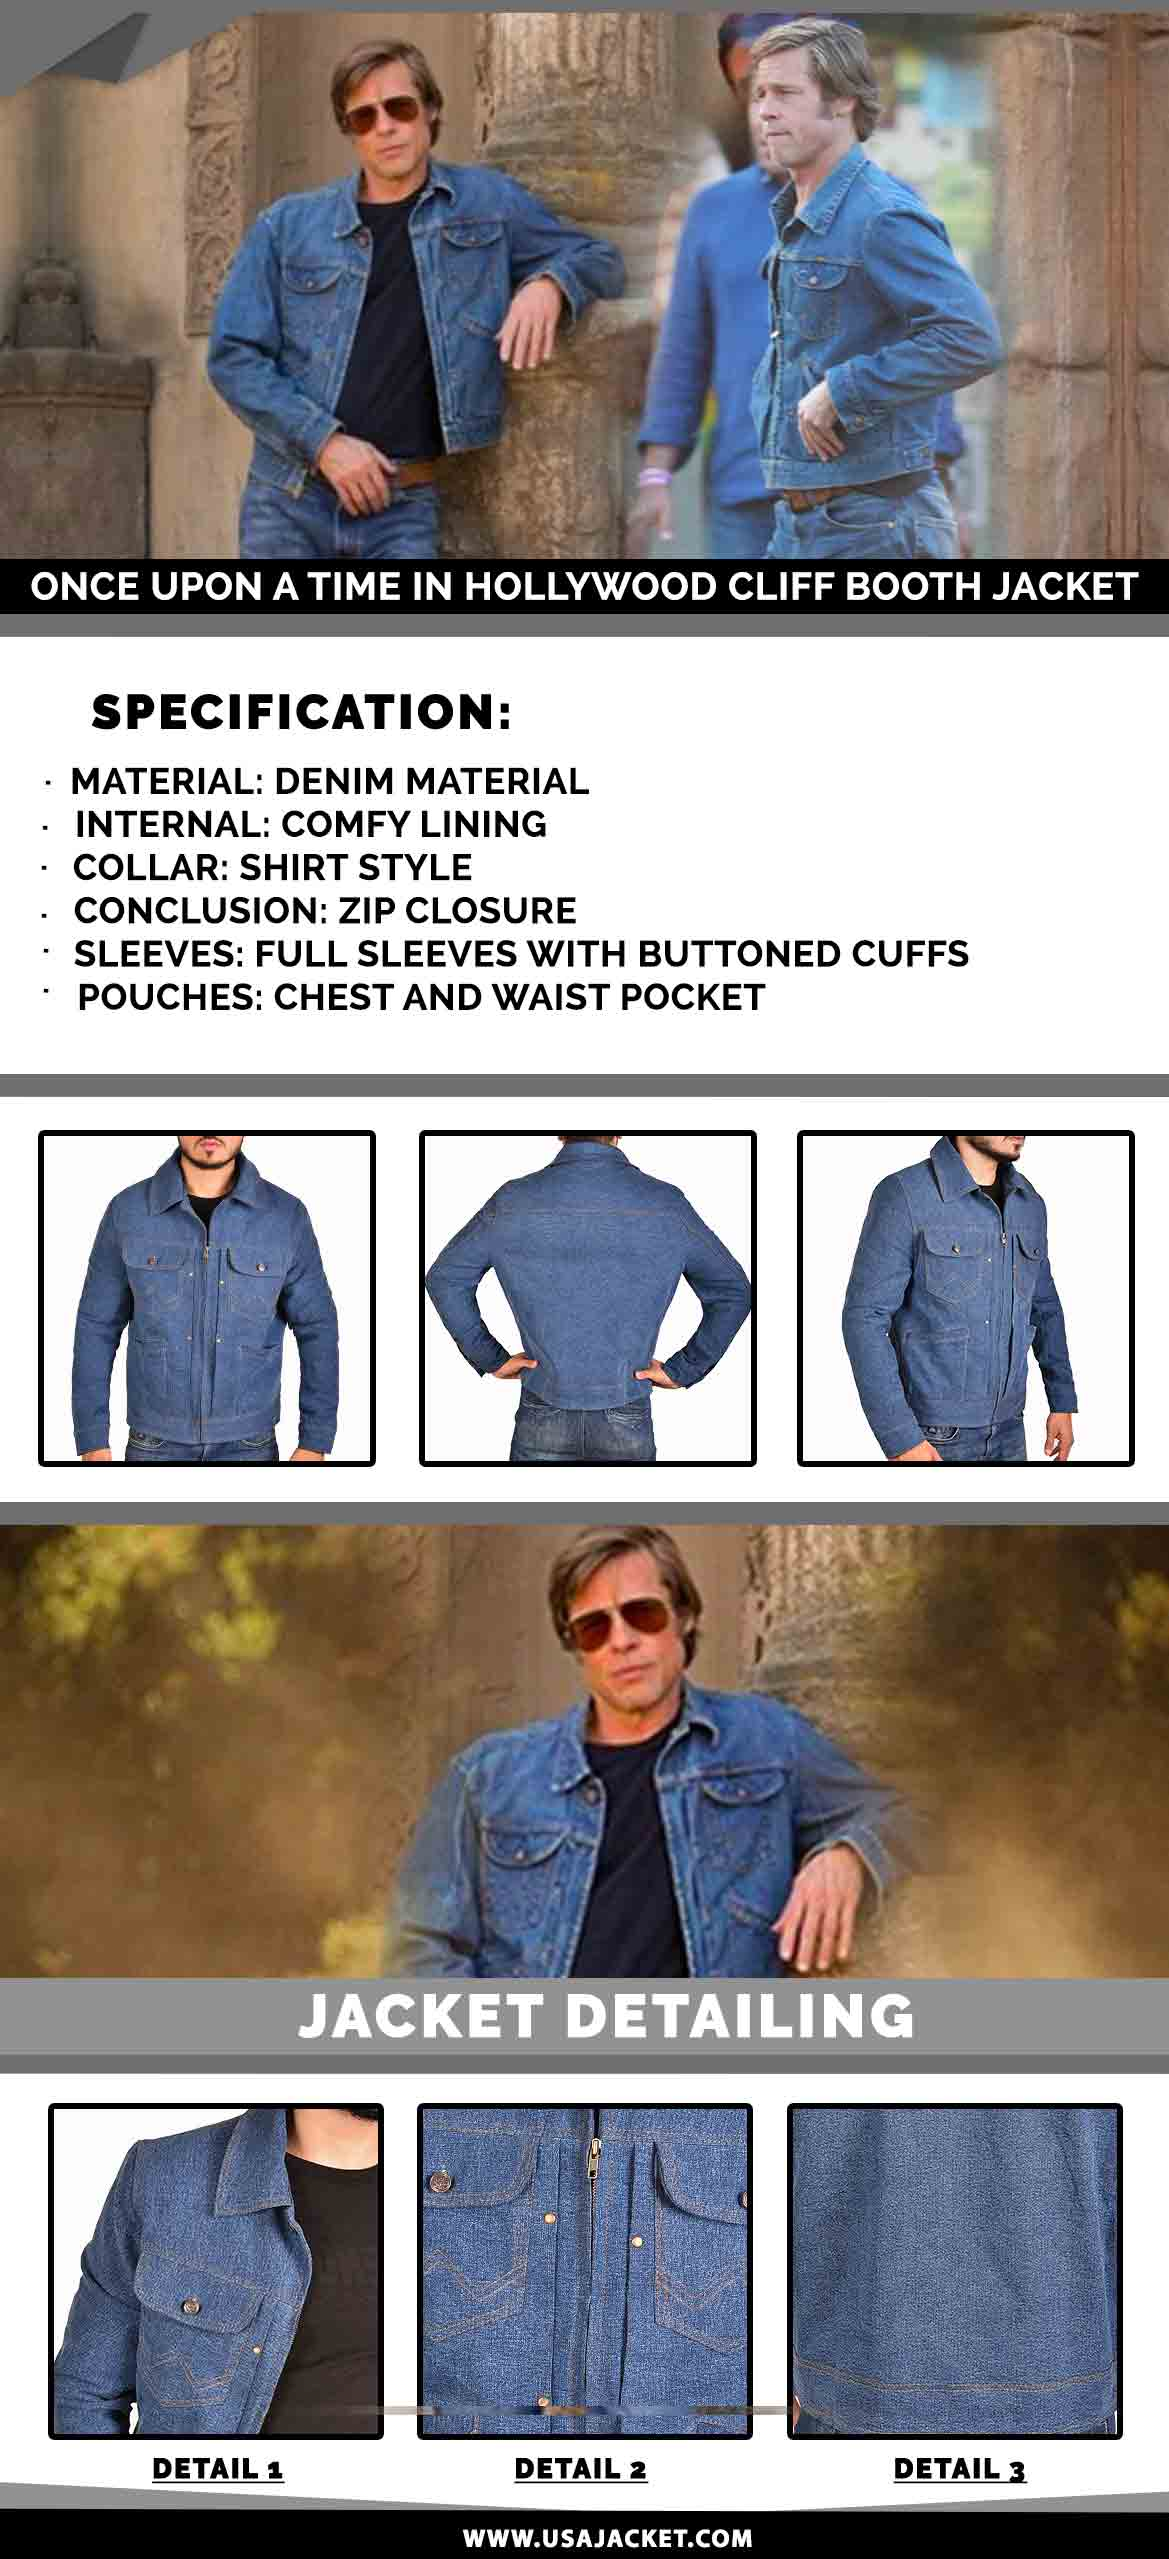 Once Upon A Time In Hollywood Cliff Booth Jacket Infogrphy